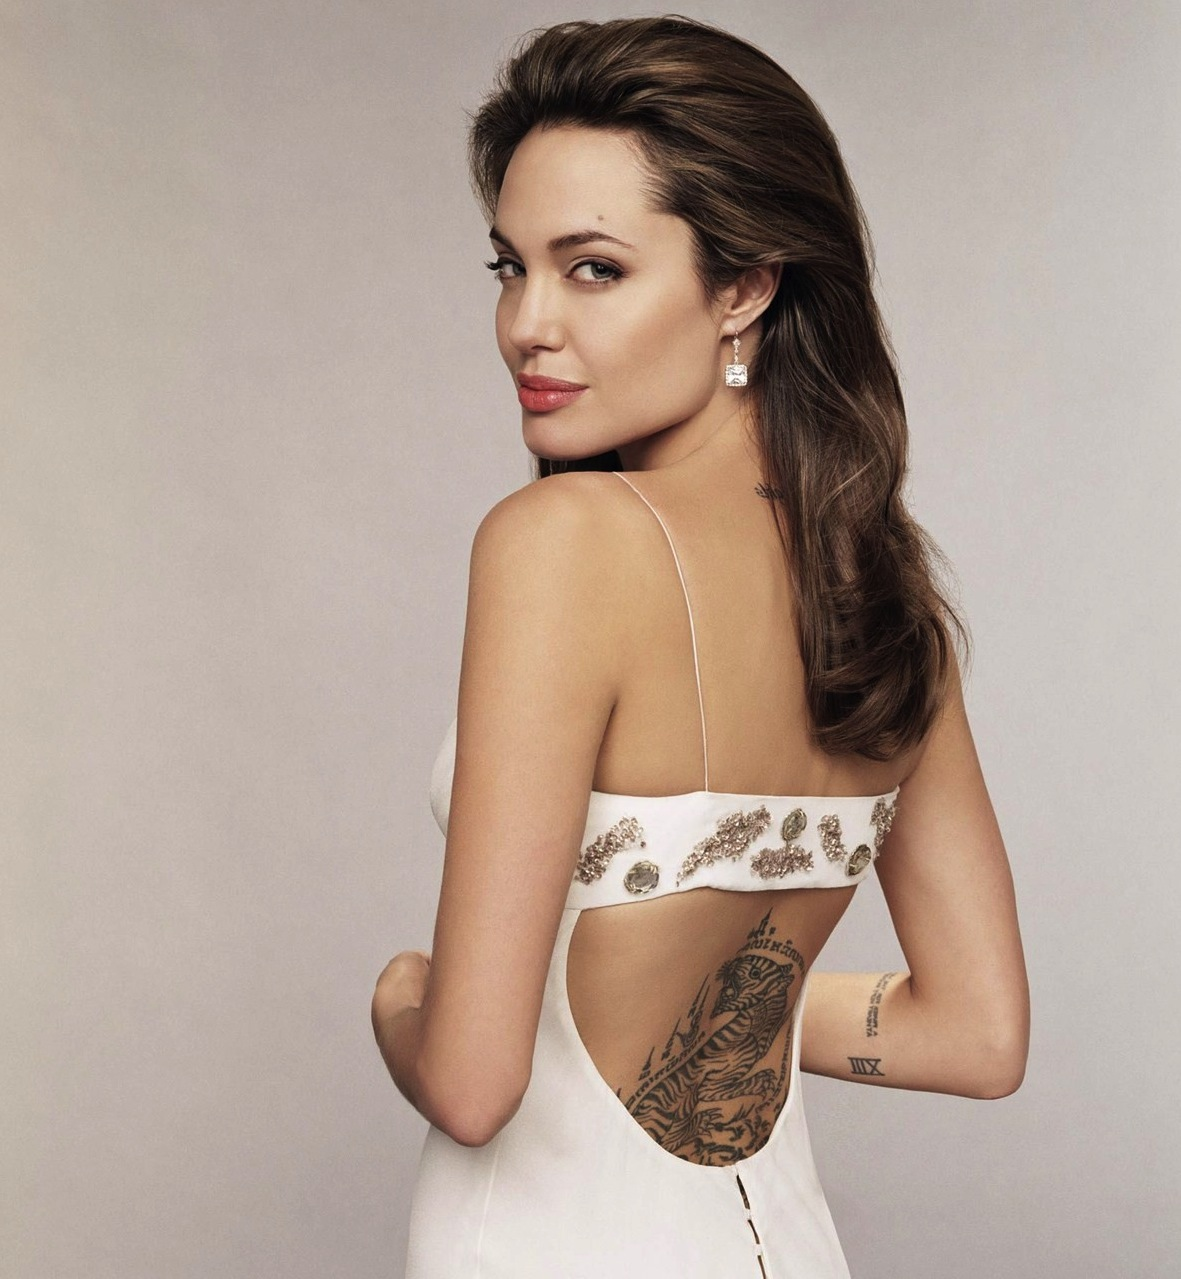 10 Hot Angelina Jolie Tattoos Images | Images Next